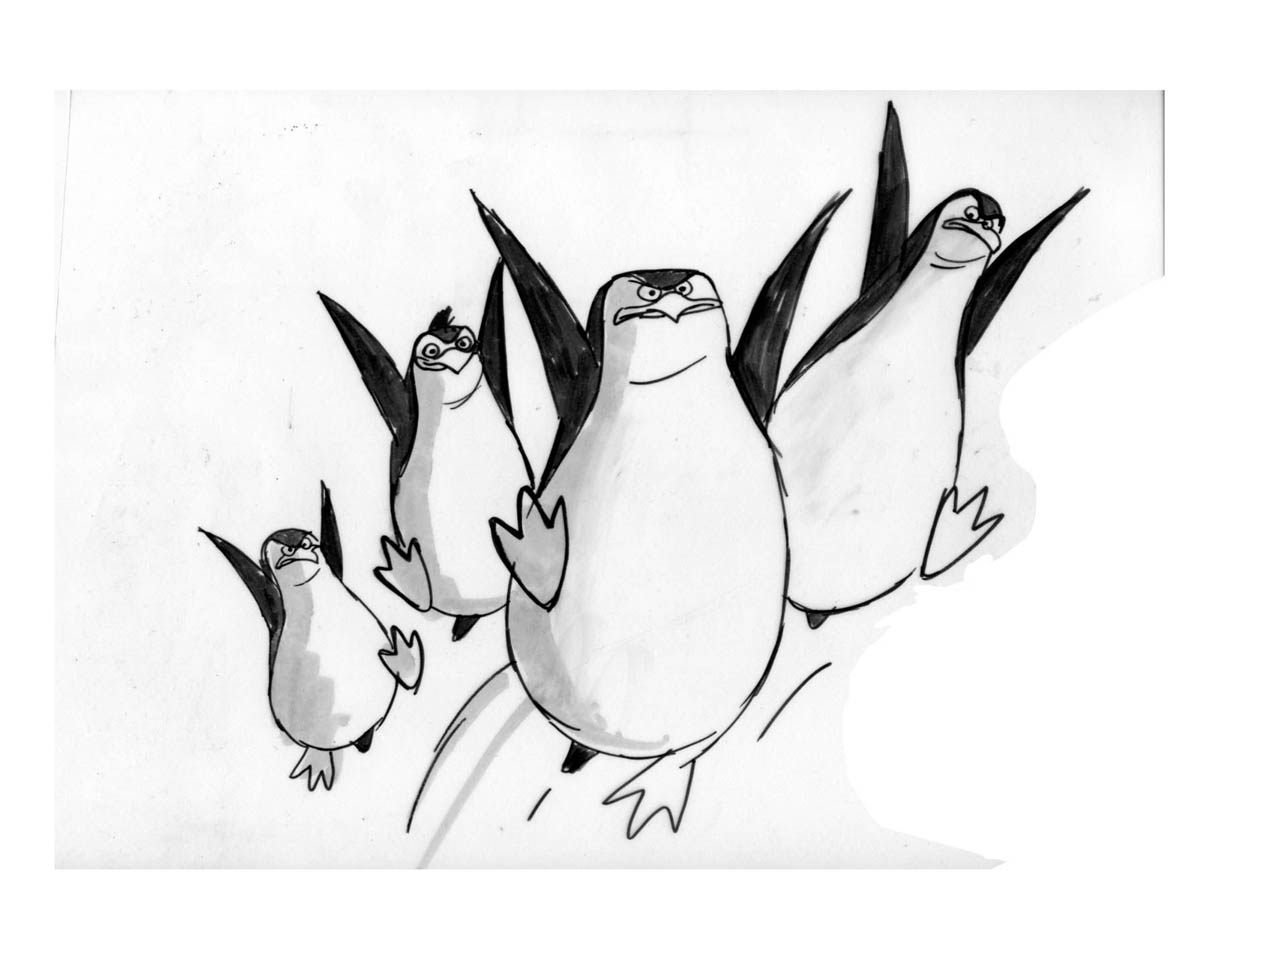 Line Drawing Penguin : Penguins of madagascar drawing at getdrawings.com free for